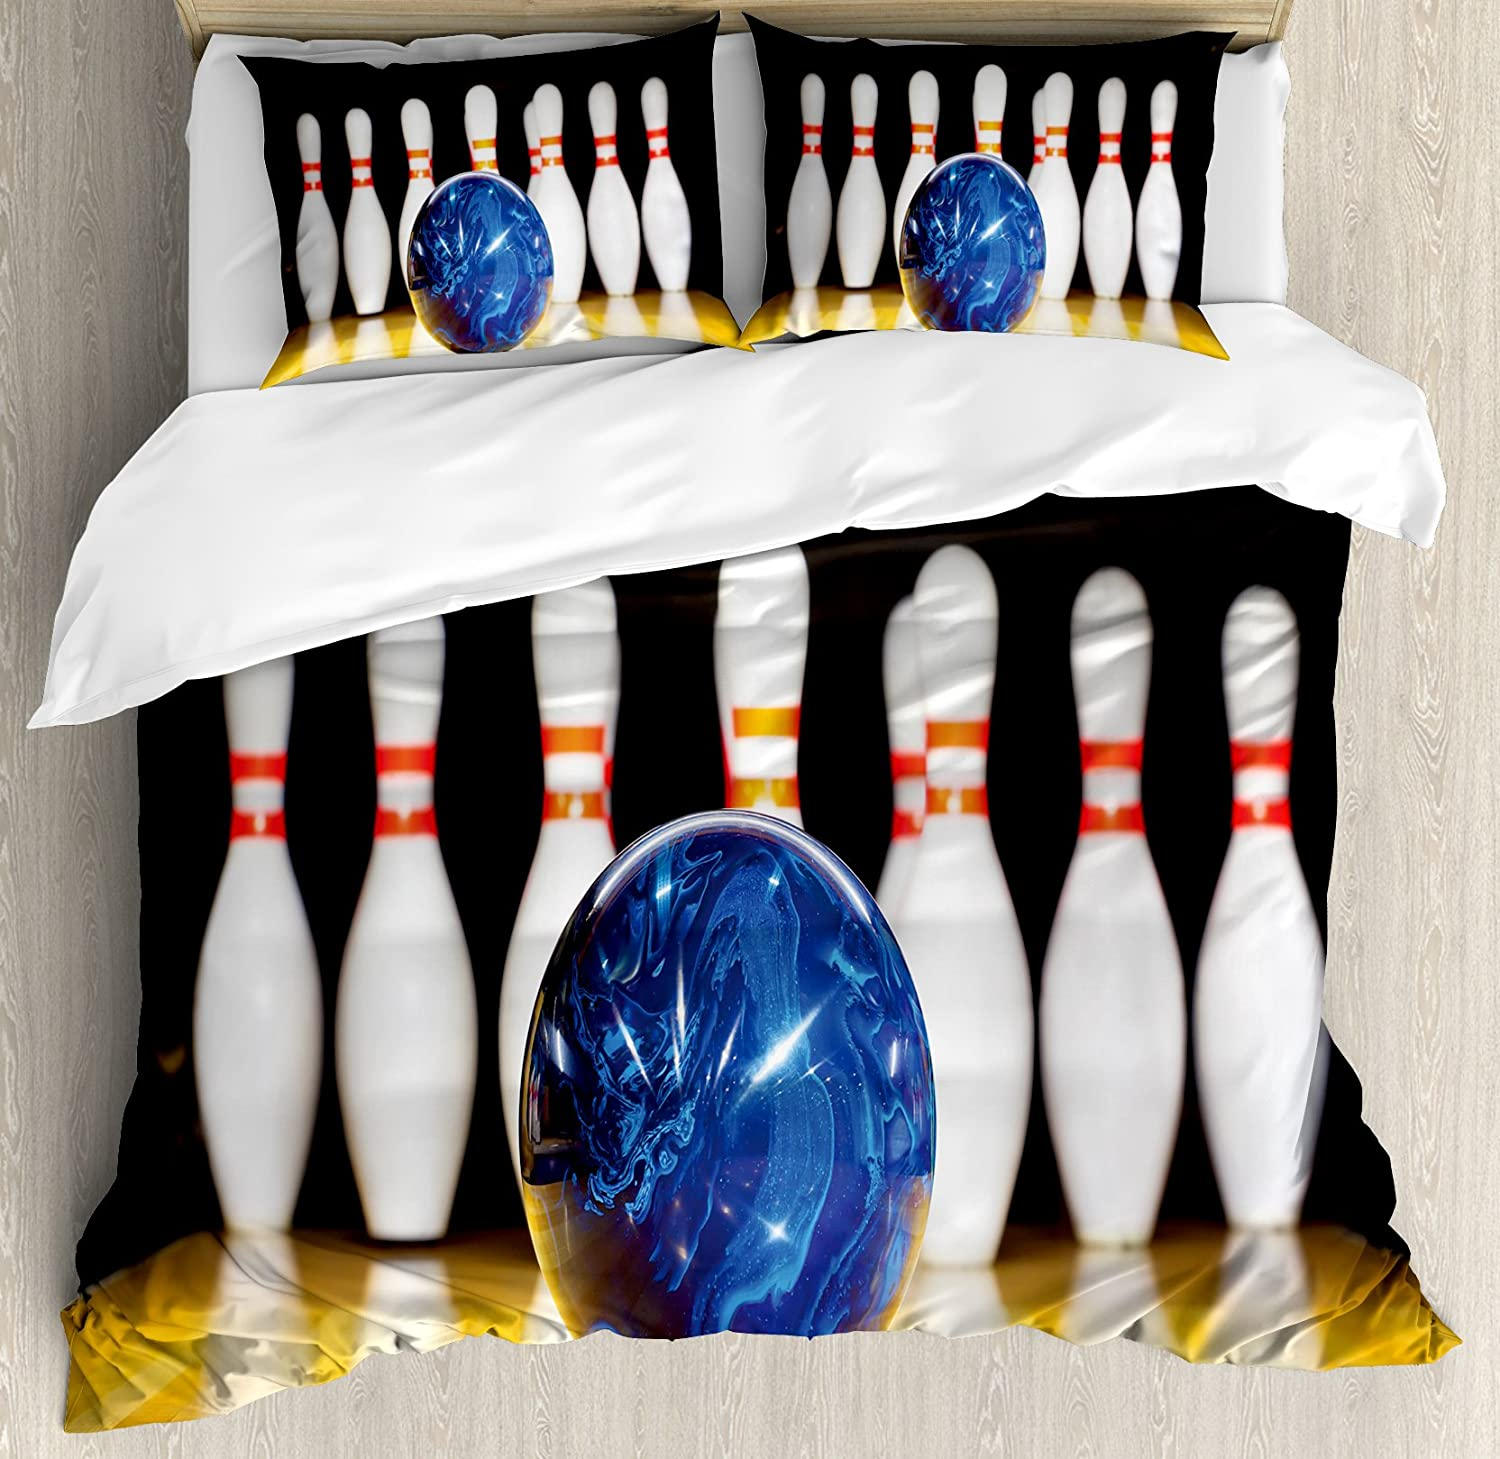 Ambesonne Bowling Party Duvet Cover Set, Blue Abstract Ball on The Lane Pins Close up View Sports Leisure Time Game, Decorative 3 Piece Bedding Set with 2 Pillow Shams, Queen Size, Blue Yellow